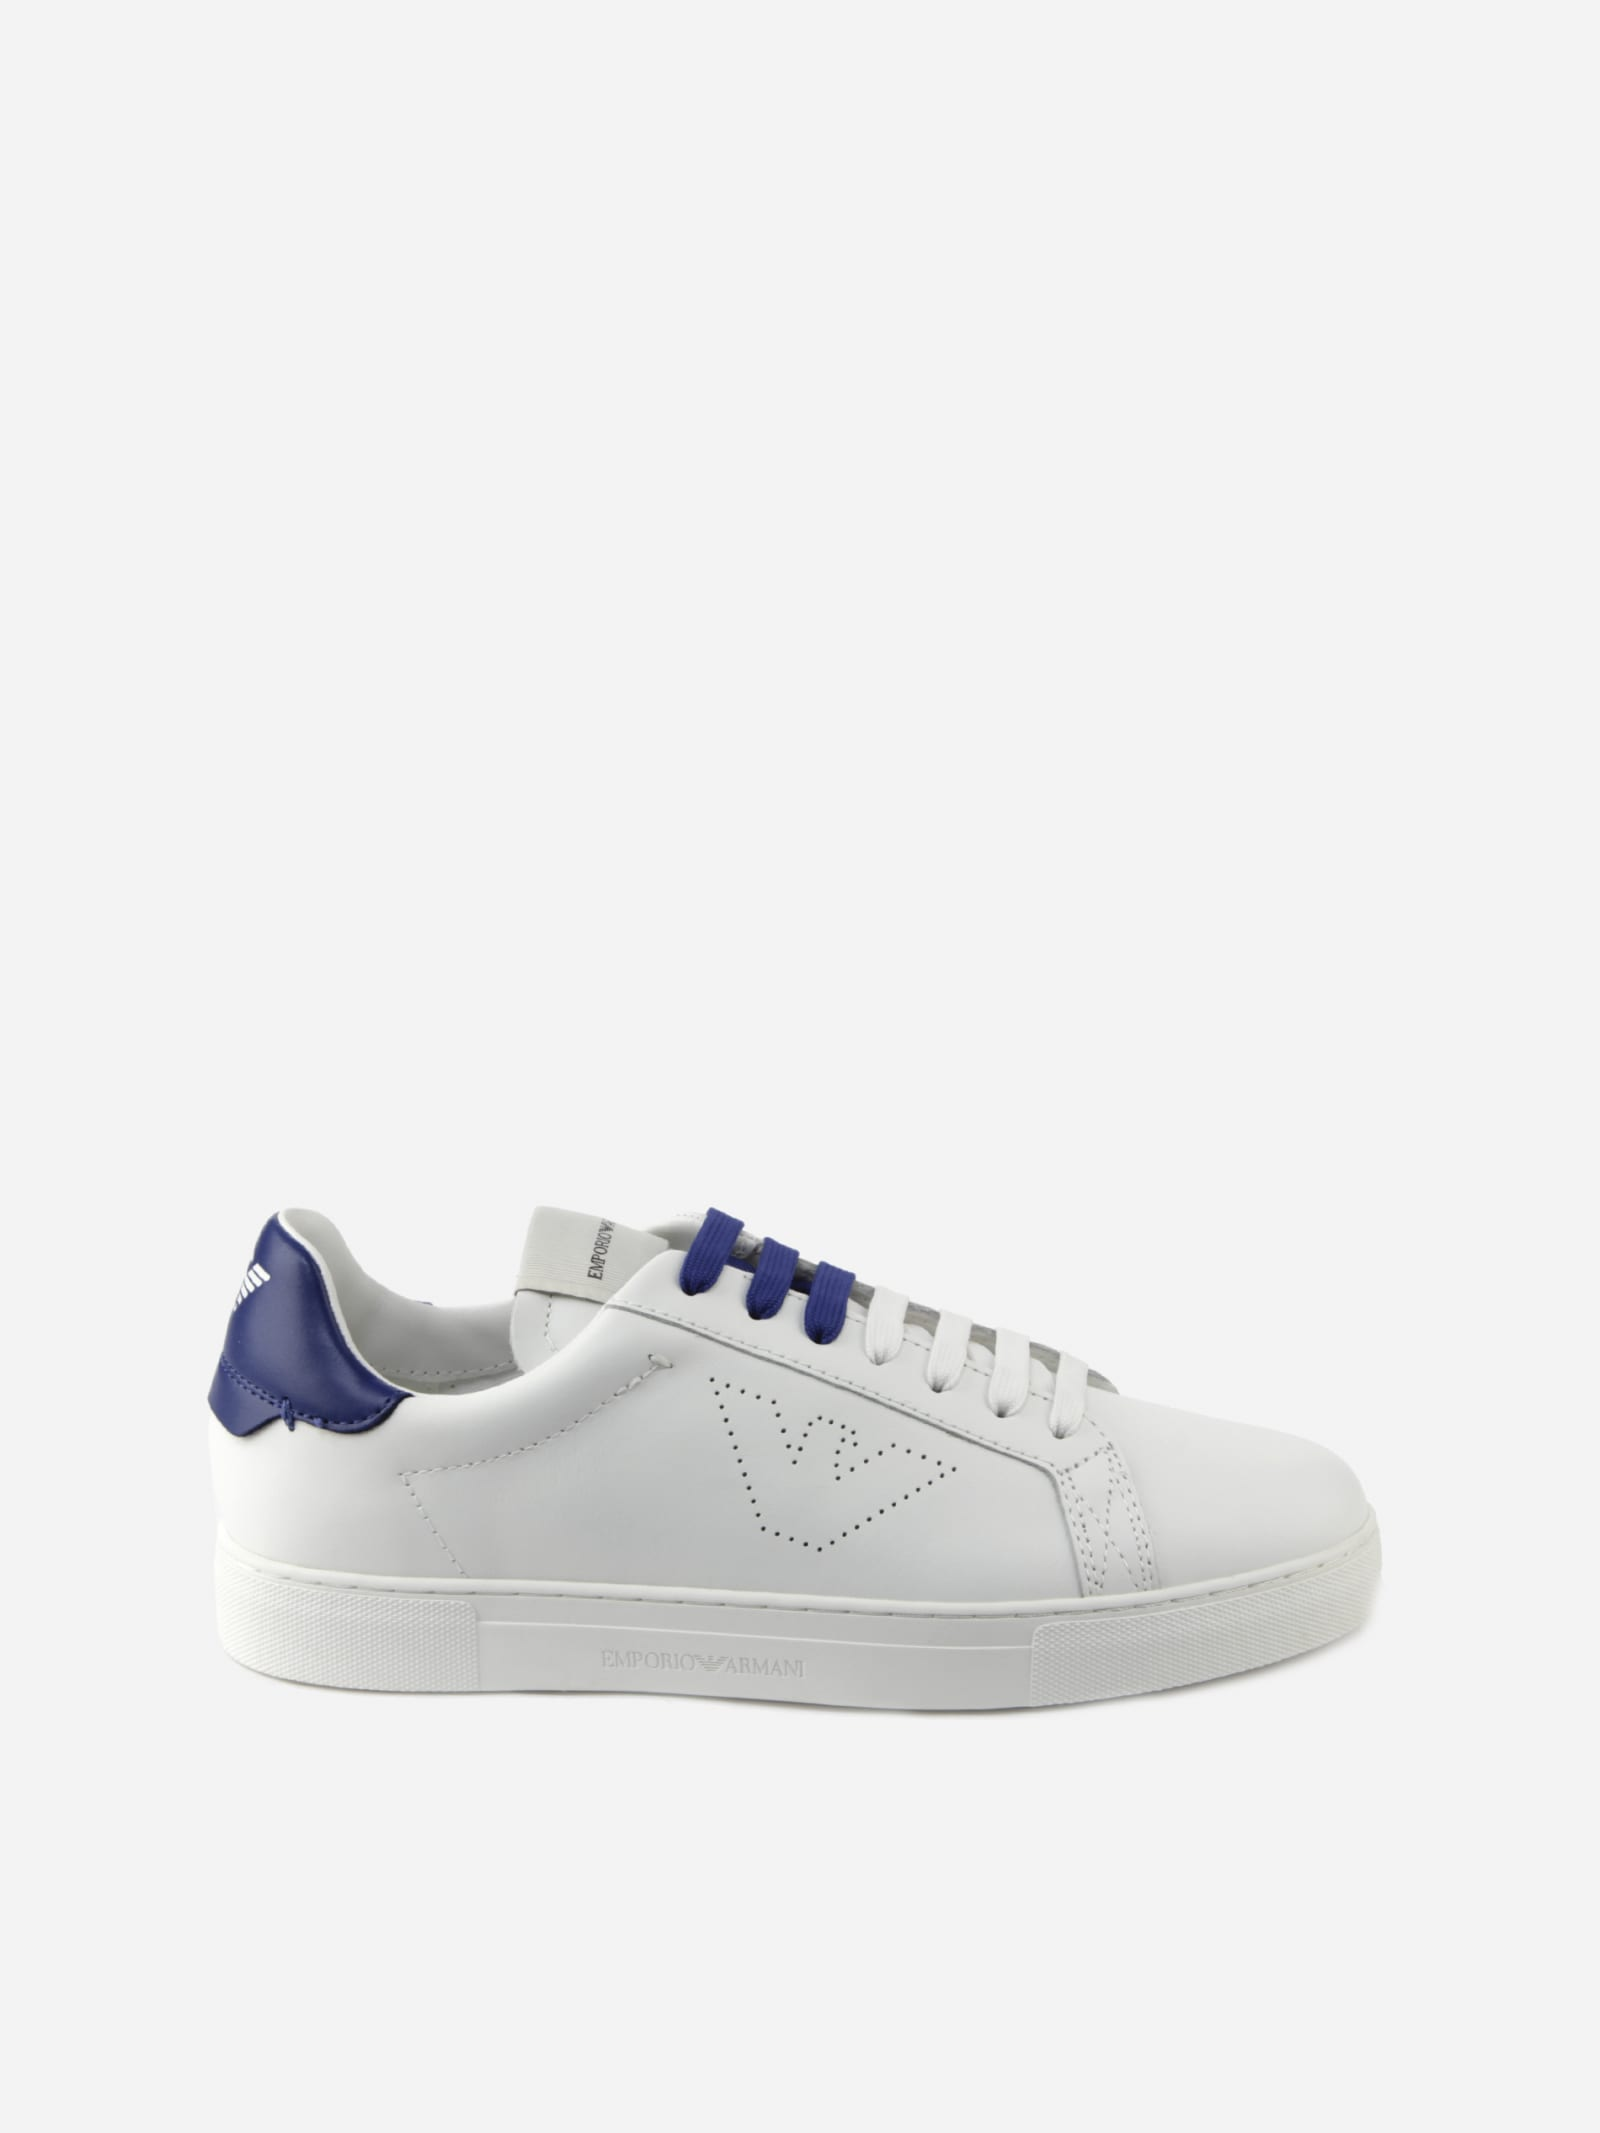 Emporio Armani LEATHER SNEAKERS WITH TWO-TONE LACES